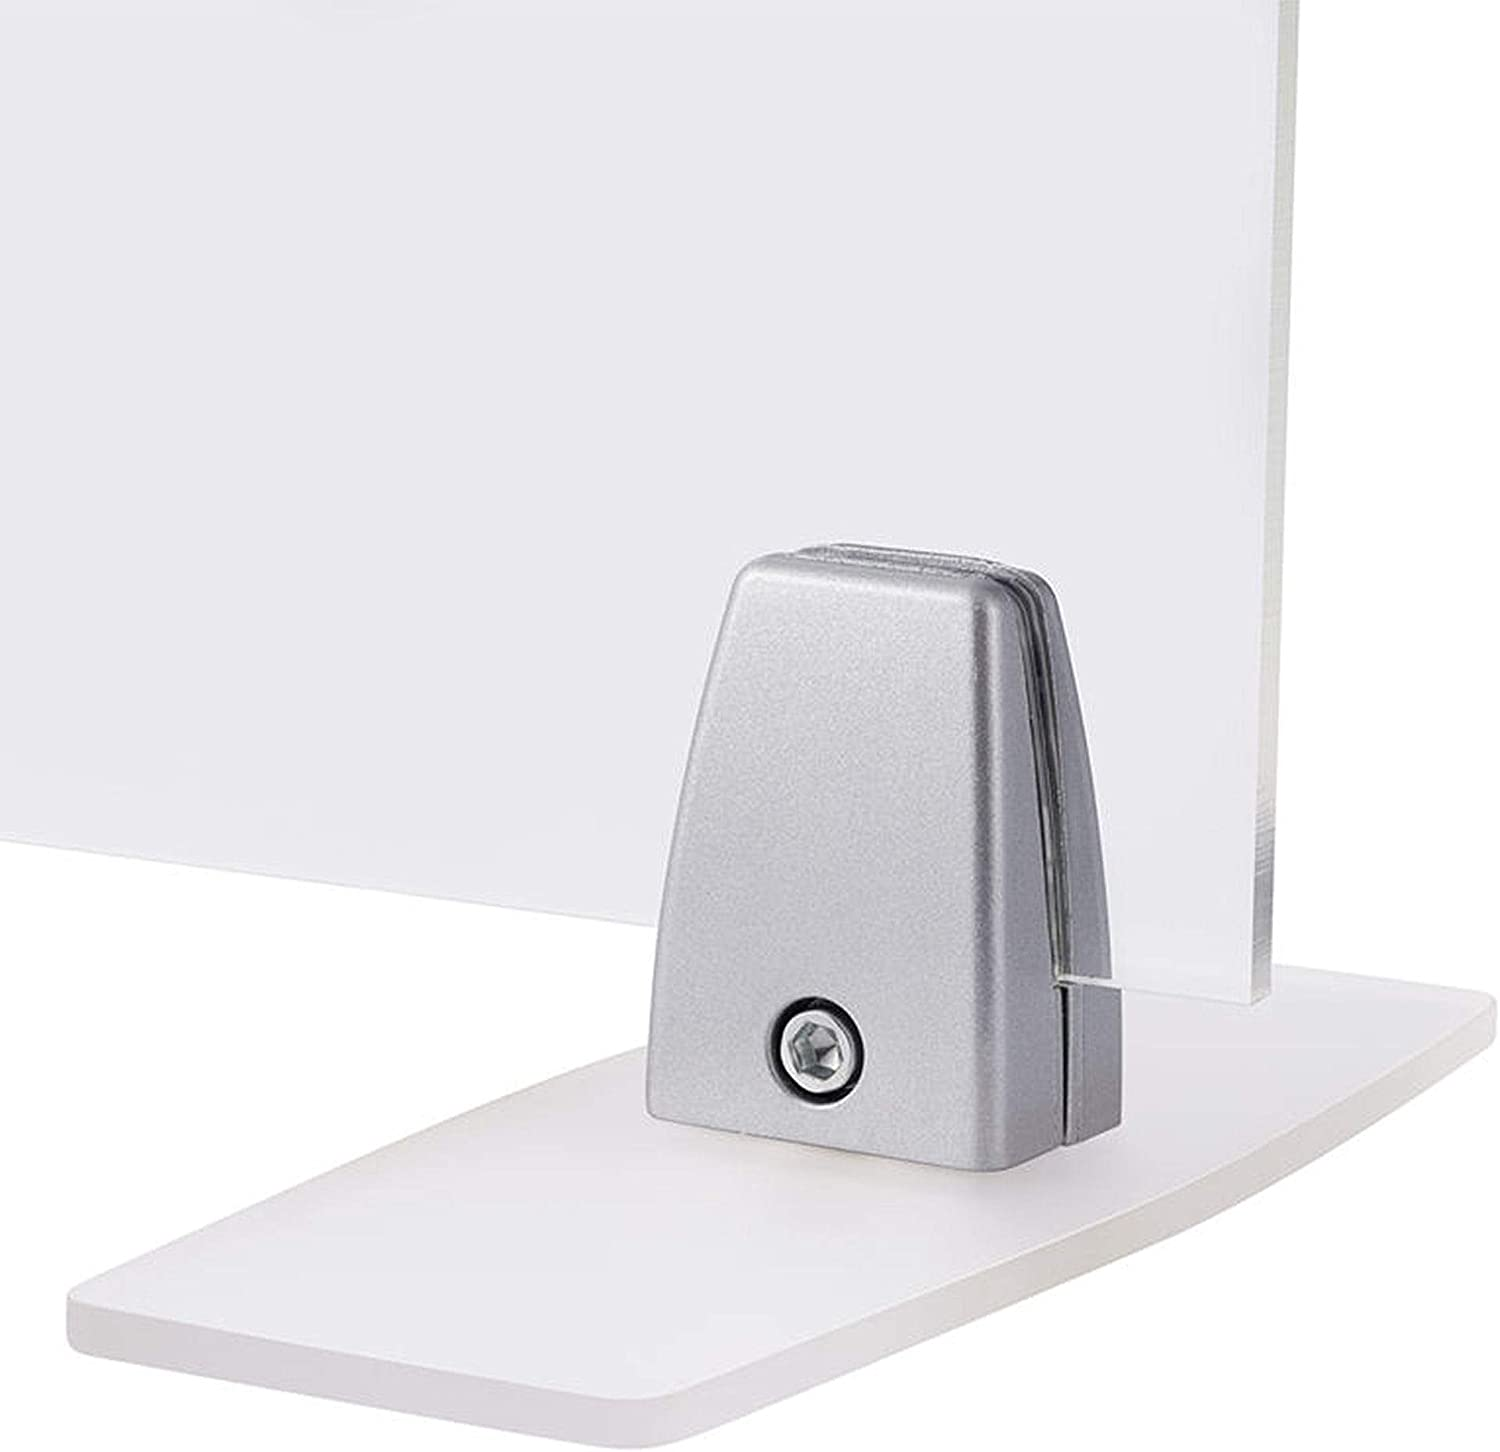 Countertop /& Reception Sneeze Guard Support Clamp Bracket with Freestanding Base for Plexiglass or Acrylic Shield Desktop